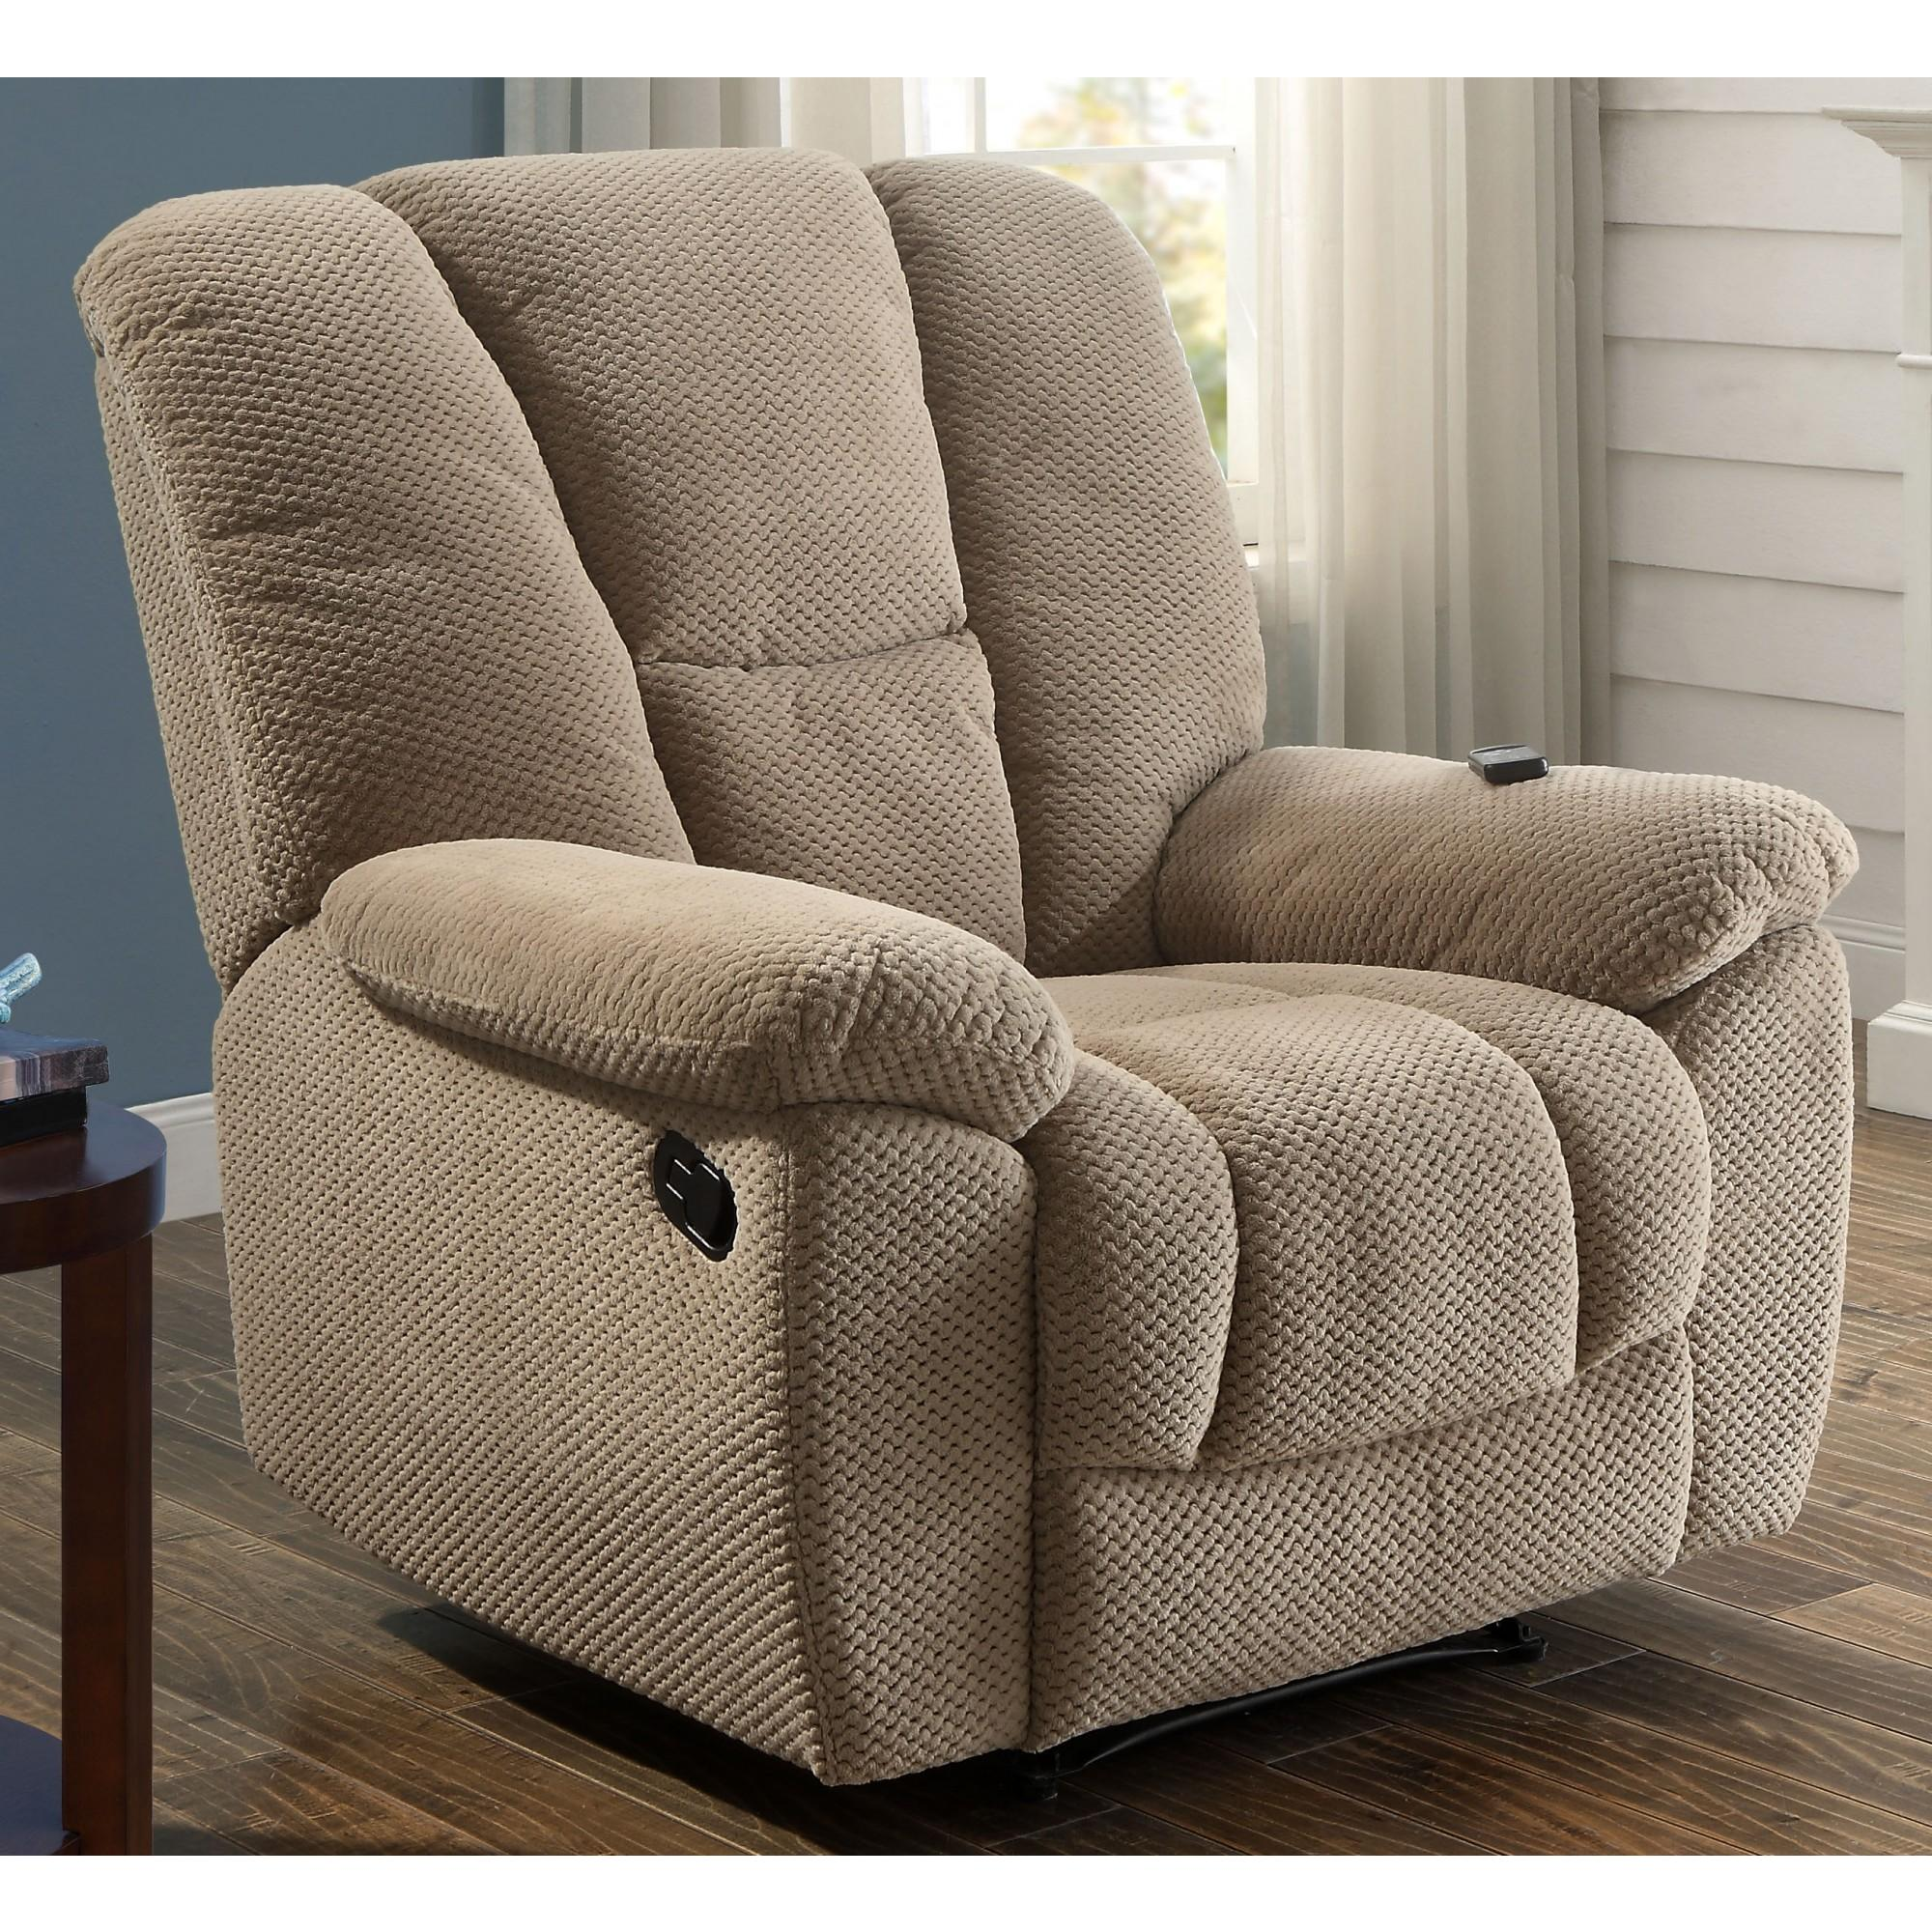 Serta Big & Tall Memory Foam Massage Recliner with USB Charging, Beige